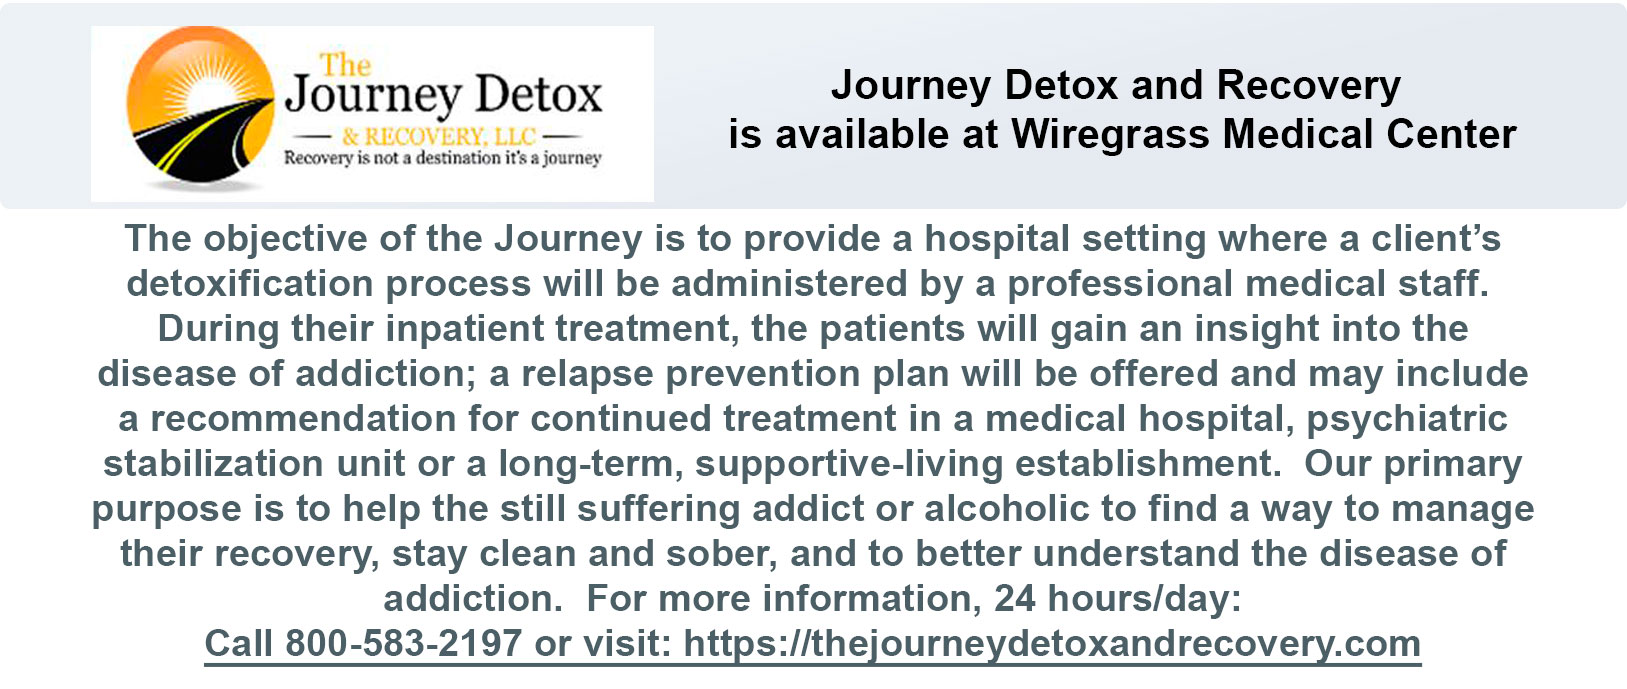 The objective of the Journey is to provide a hospital setting where a client's detoxification process will be administered by a professional medical staff.  During their inpatient treatment, the patients will gain an insight into the disease of addiction; a relapse prevention plan will be offered and may include a recommendation for continued treatment in a medical hospital, psychiatric stabilization unit or a long-term, supportive-living establishment.  Our primary purpose is to help the still suffering addict or alcoholic to find a way to manage their recovery, stay clean and sober, and to better understand the disease of addiction.  For more information, 24 hours/day: Call 800-583-2197 or visit: https://thejourneydetoxandrecovery.com